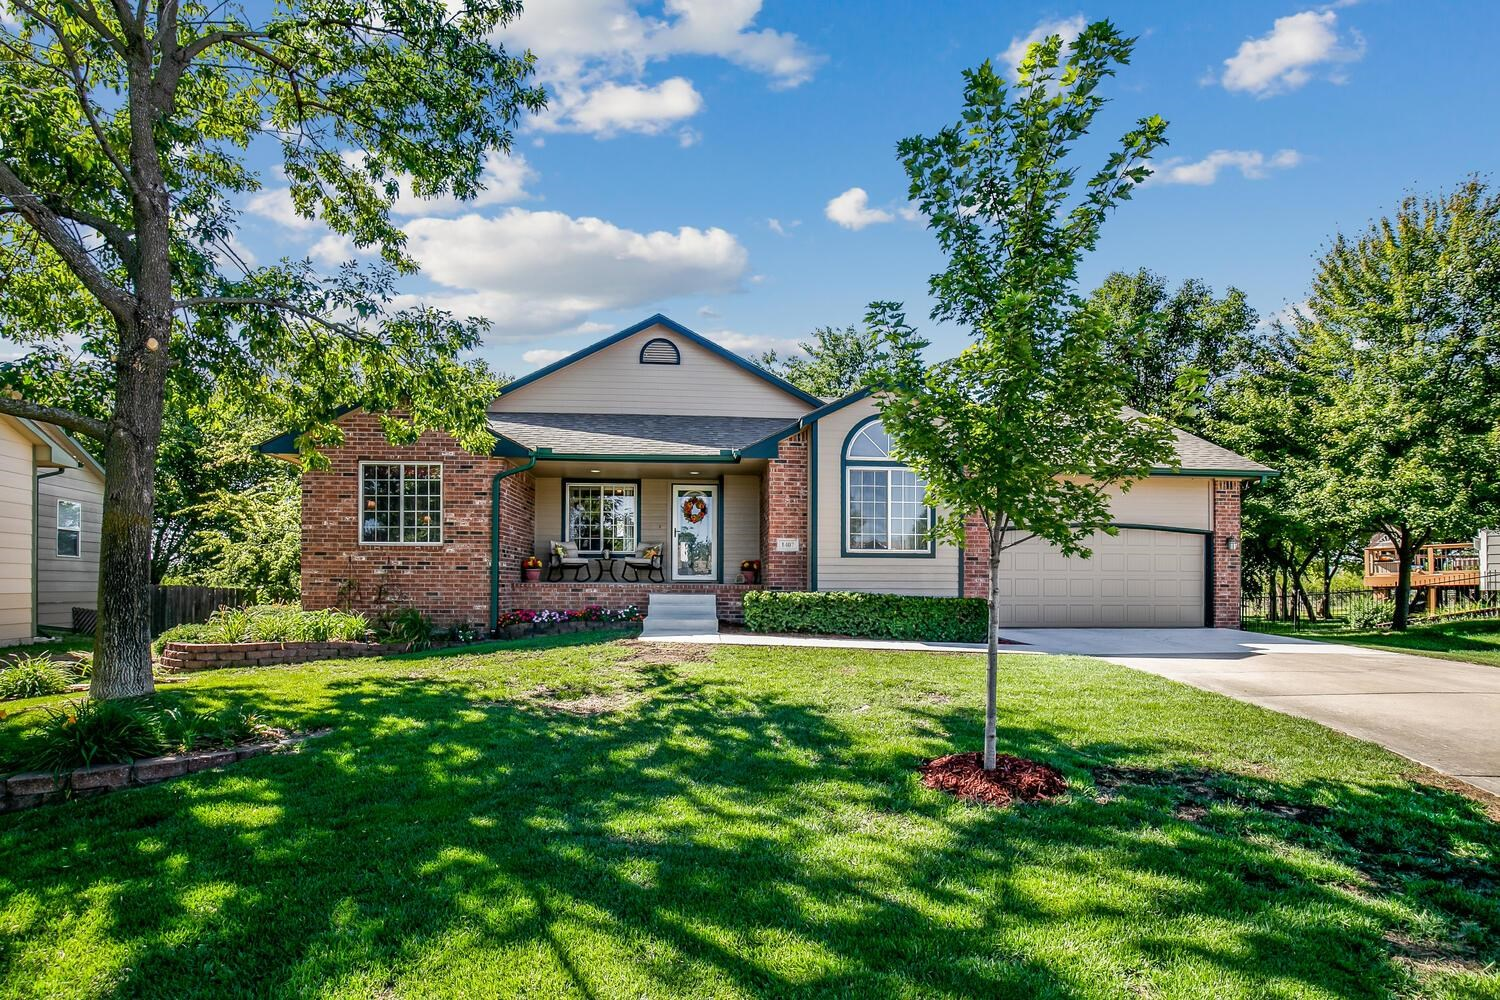 This custom built/one owner home by Warren Brothers construction sits tucked back on a cul-de-sac lot at the back of this Andover subdivision with no special taxes! The sellers love the privacy of the lot with no neighbors behind then and established trees to enjoy. As you walk up, you might be fooled to think this is a small garage but this is an oversized 19.8x30 garagewith storage above that can easily fit cars, toys, workshop, etc. As you enter the home, you will see how well the sellers have taken care of their home and enjoy the split bedroom style of the first floor. The sellers built this home to always be enjoying the privacy of the backyard and natural light. From the 2 eating areas with one set just like a sunroom off the kitchen (which would also make a great second living space), recently updated kitchen with granite countertops, pantry space near garage, newer carpet on main floor, new roof 2018 with high impact shingles (many times these give a great insurance discount), new concrete steps, and so much more. The sellers even had outlets for exterior lights installed in the eaves for holiday decorating with a quick flip of a switch inside the home. There are lots of areas to entertain in the home but the space that was perfect was the large family room with gas fireplace in the viewoutbasement. with 5 total bedrooms and 3 baths, and oversized garage, this home is just waiting for its new owners to enjoy in Andover.